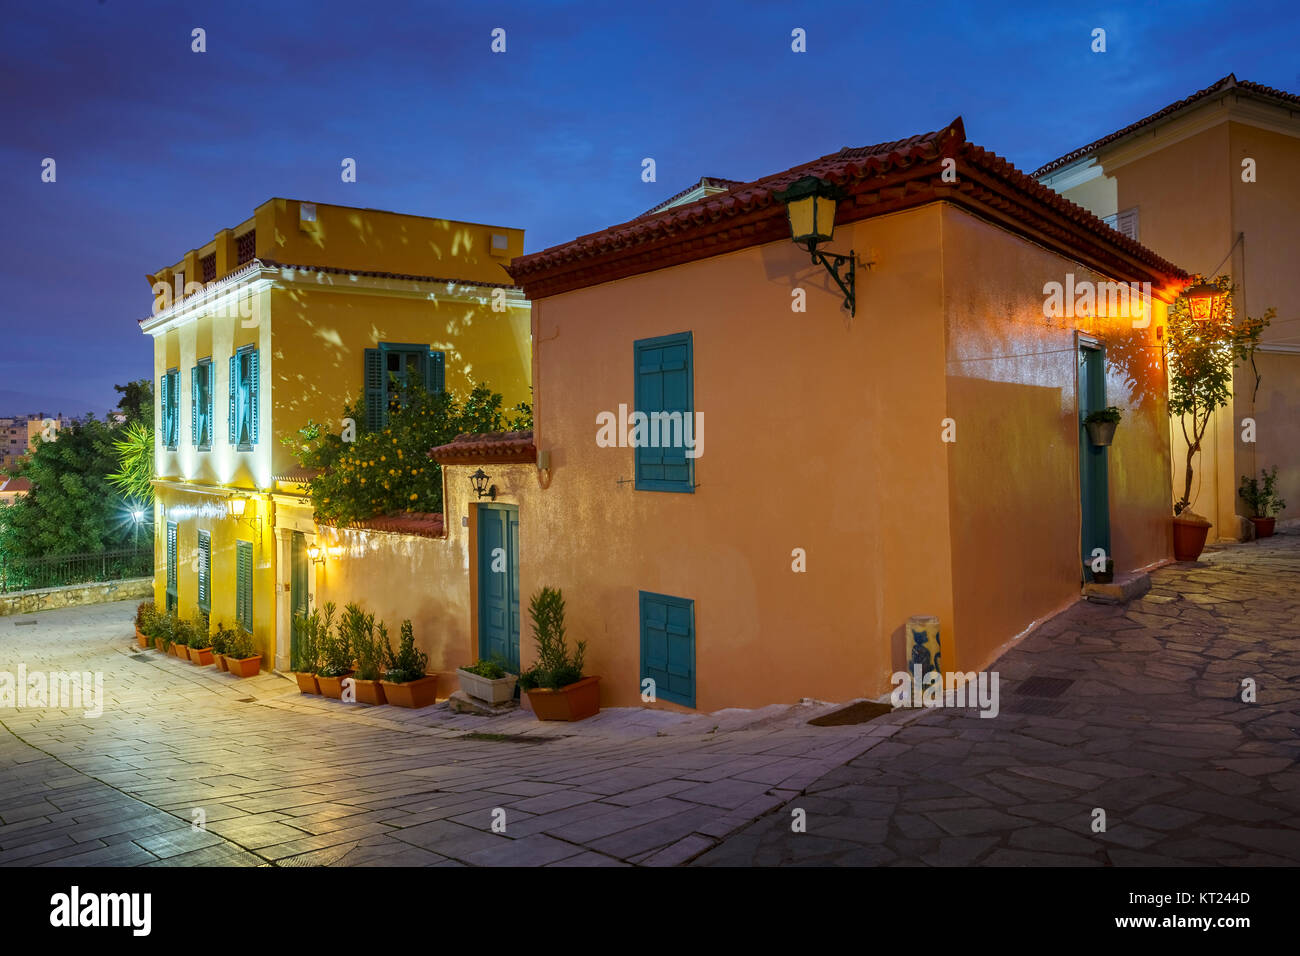 Architecture in Plaka, the old town of Athens, Greece. - Stock Image